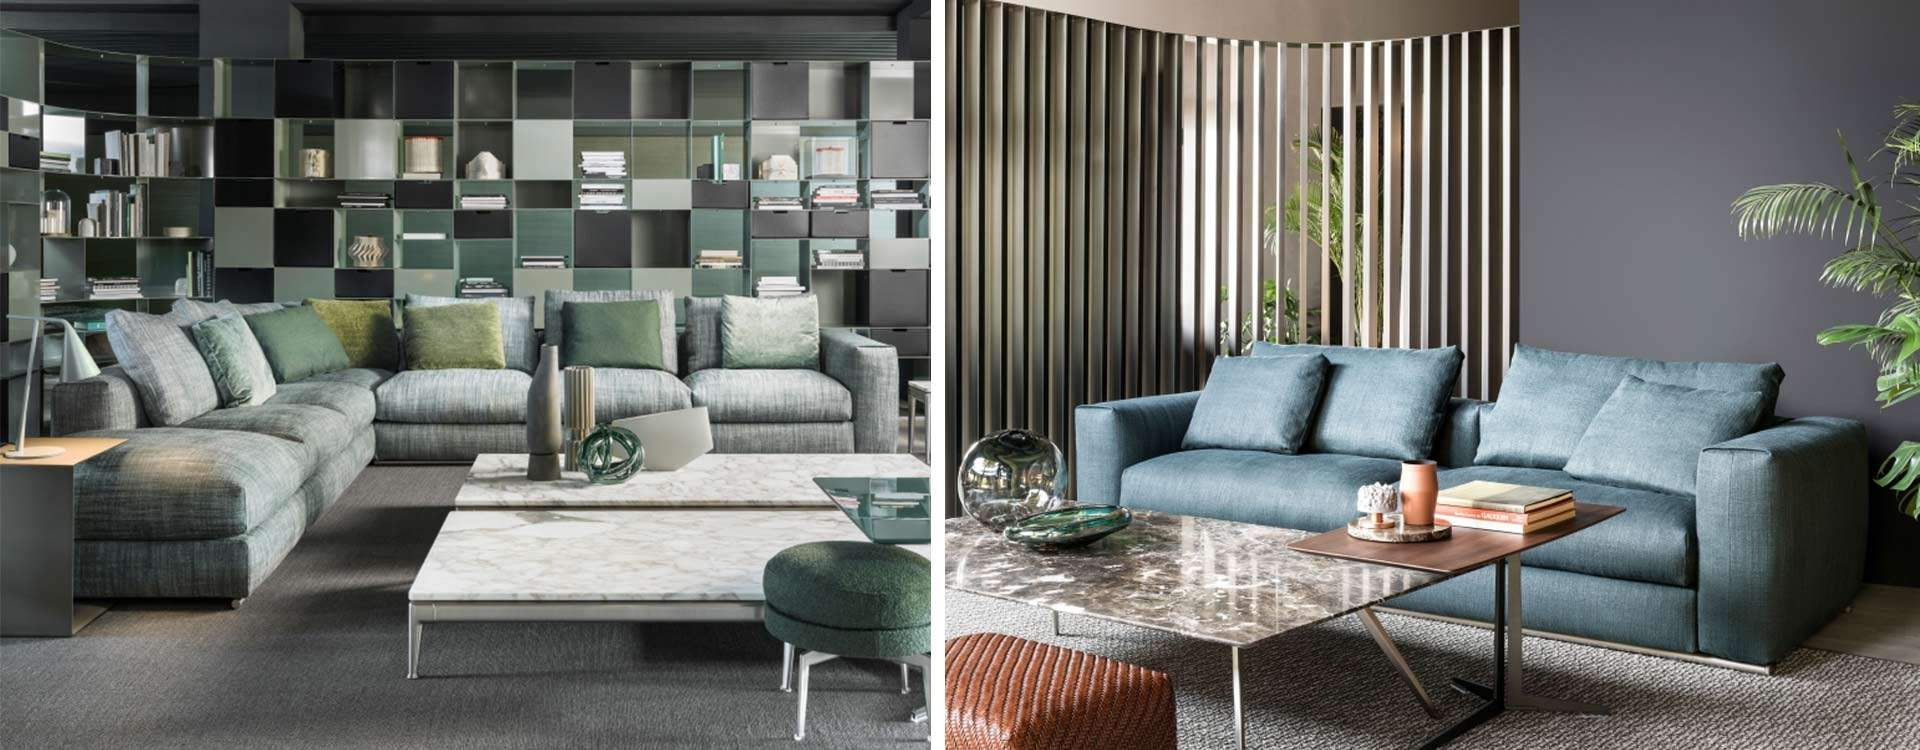 Asolo Flexform sofa collection 2020